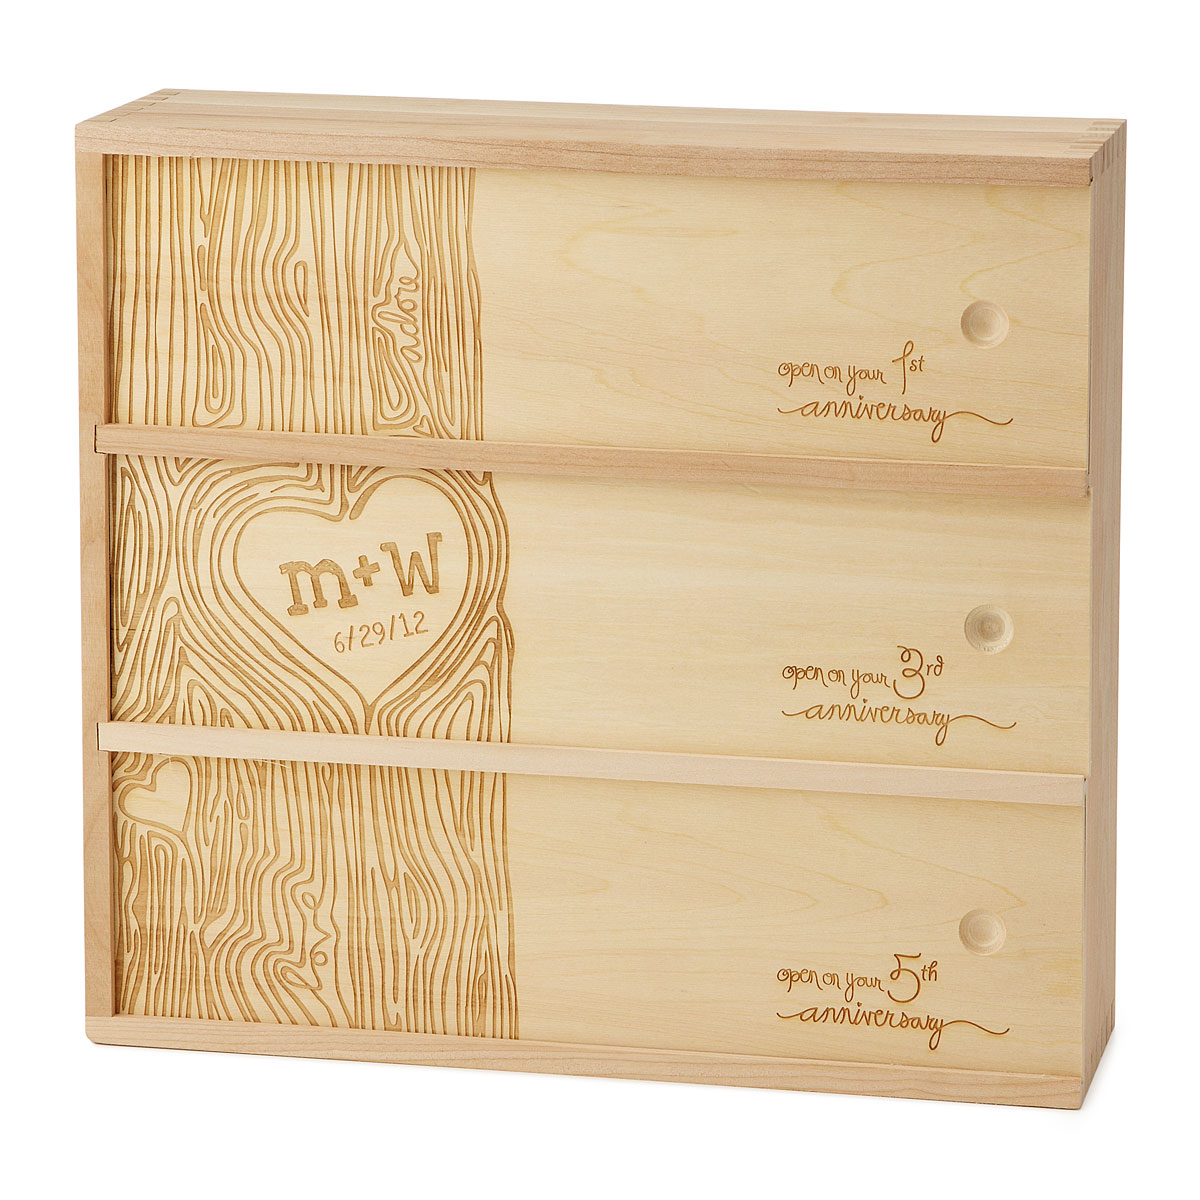 wine box ceremony island bliss weddings With wine box wedding gift